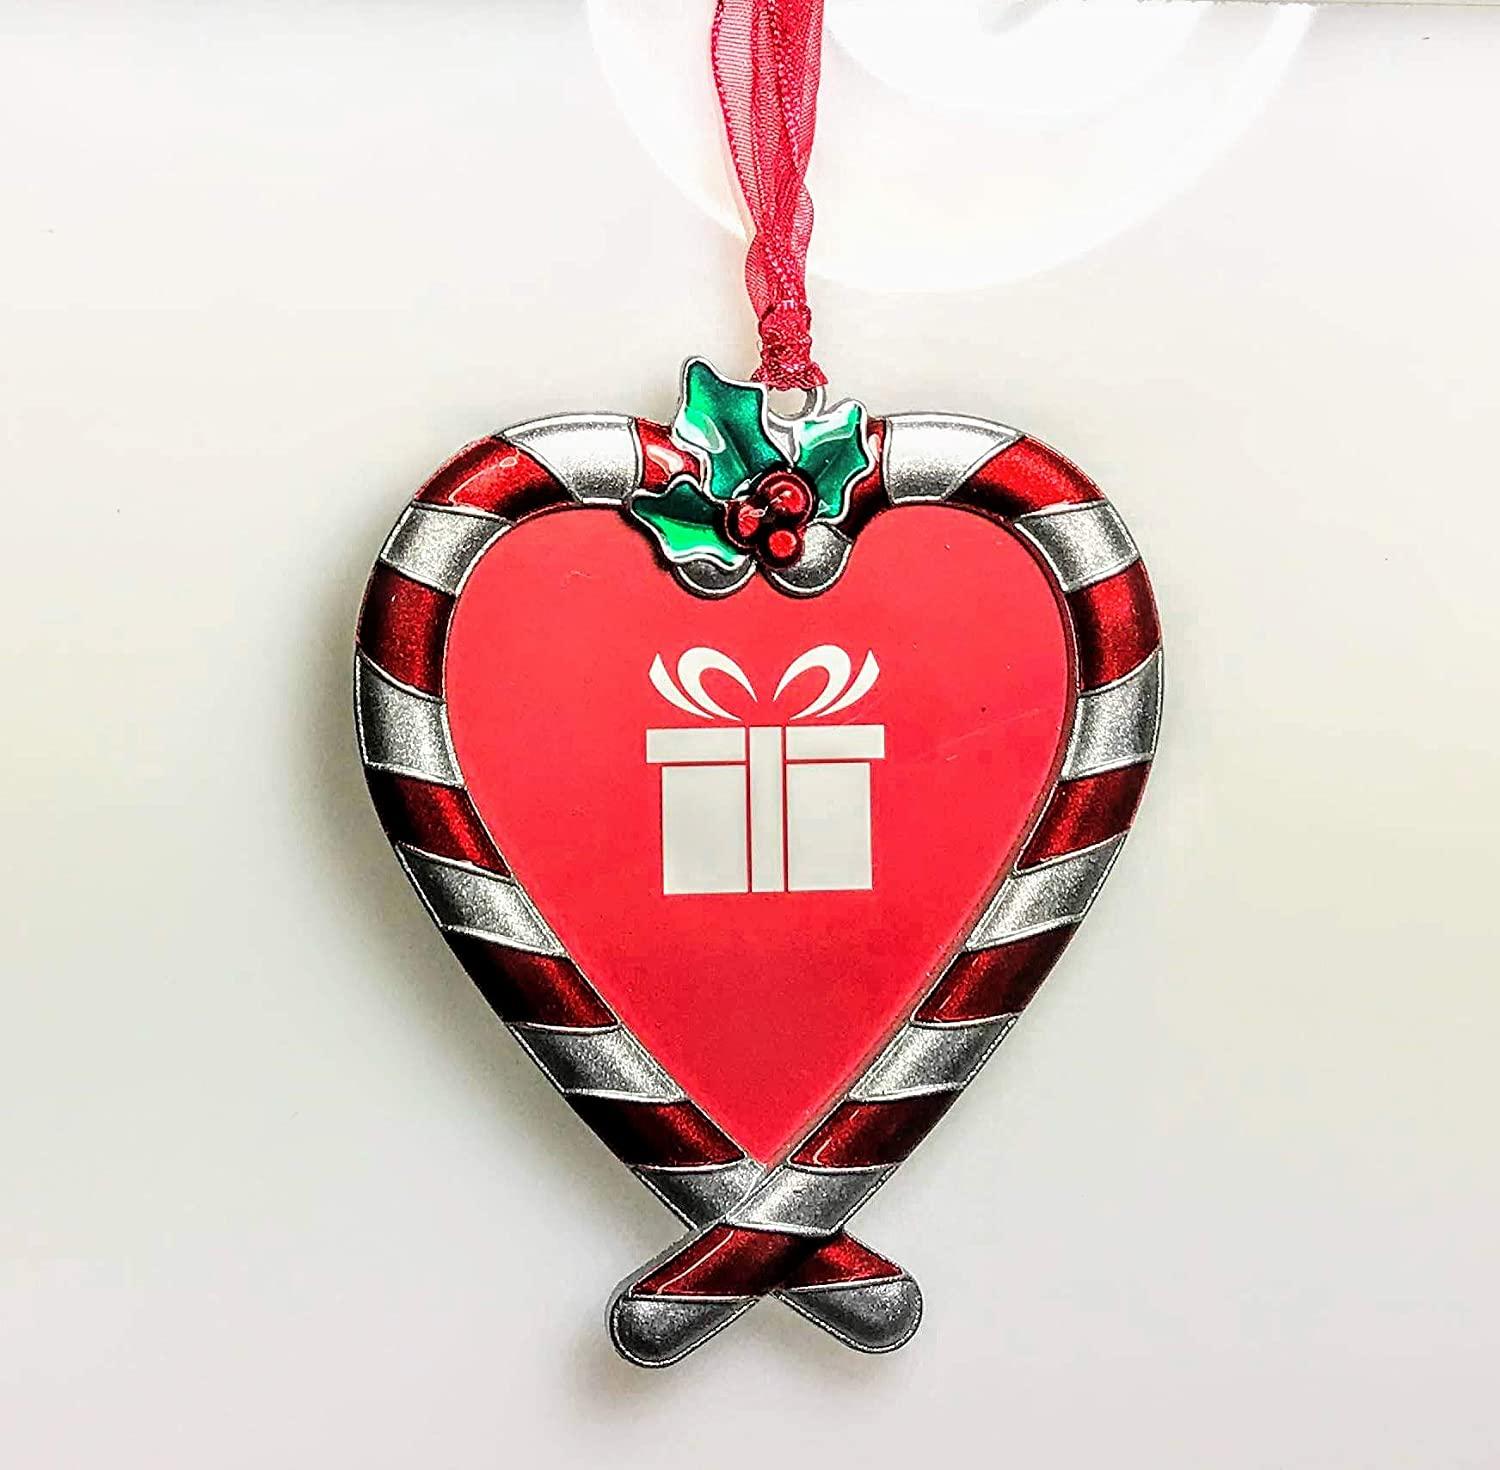 Candy Cane Heart Photo Frame Ornament